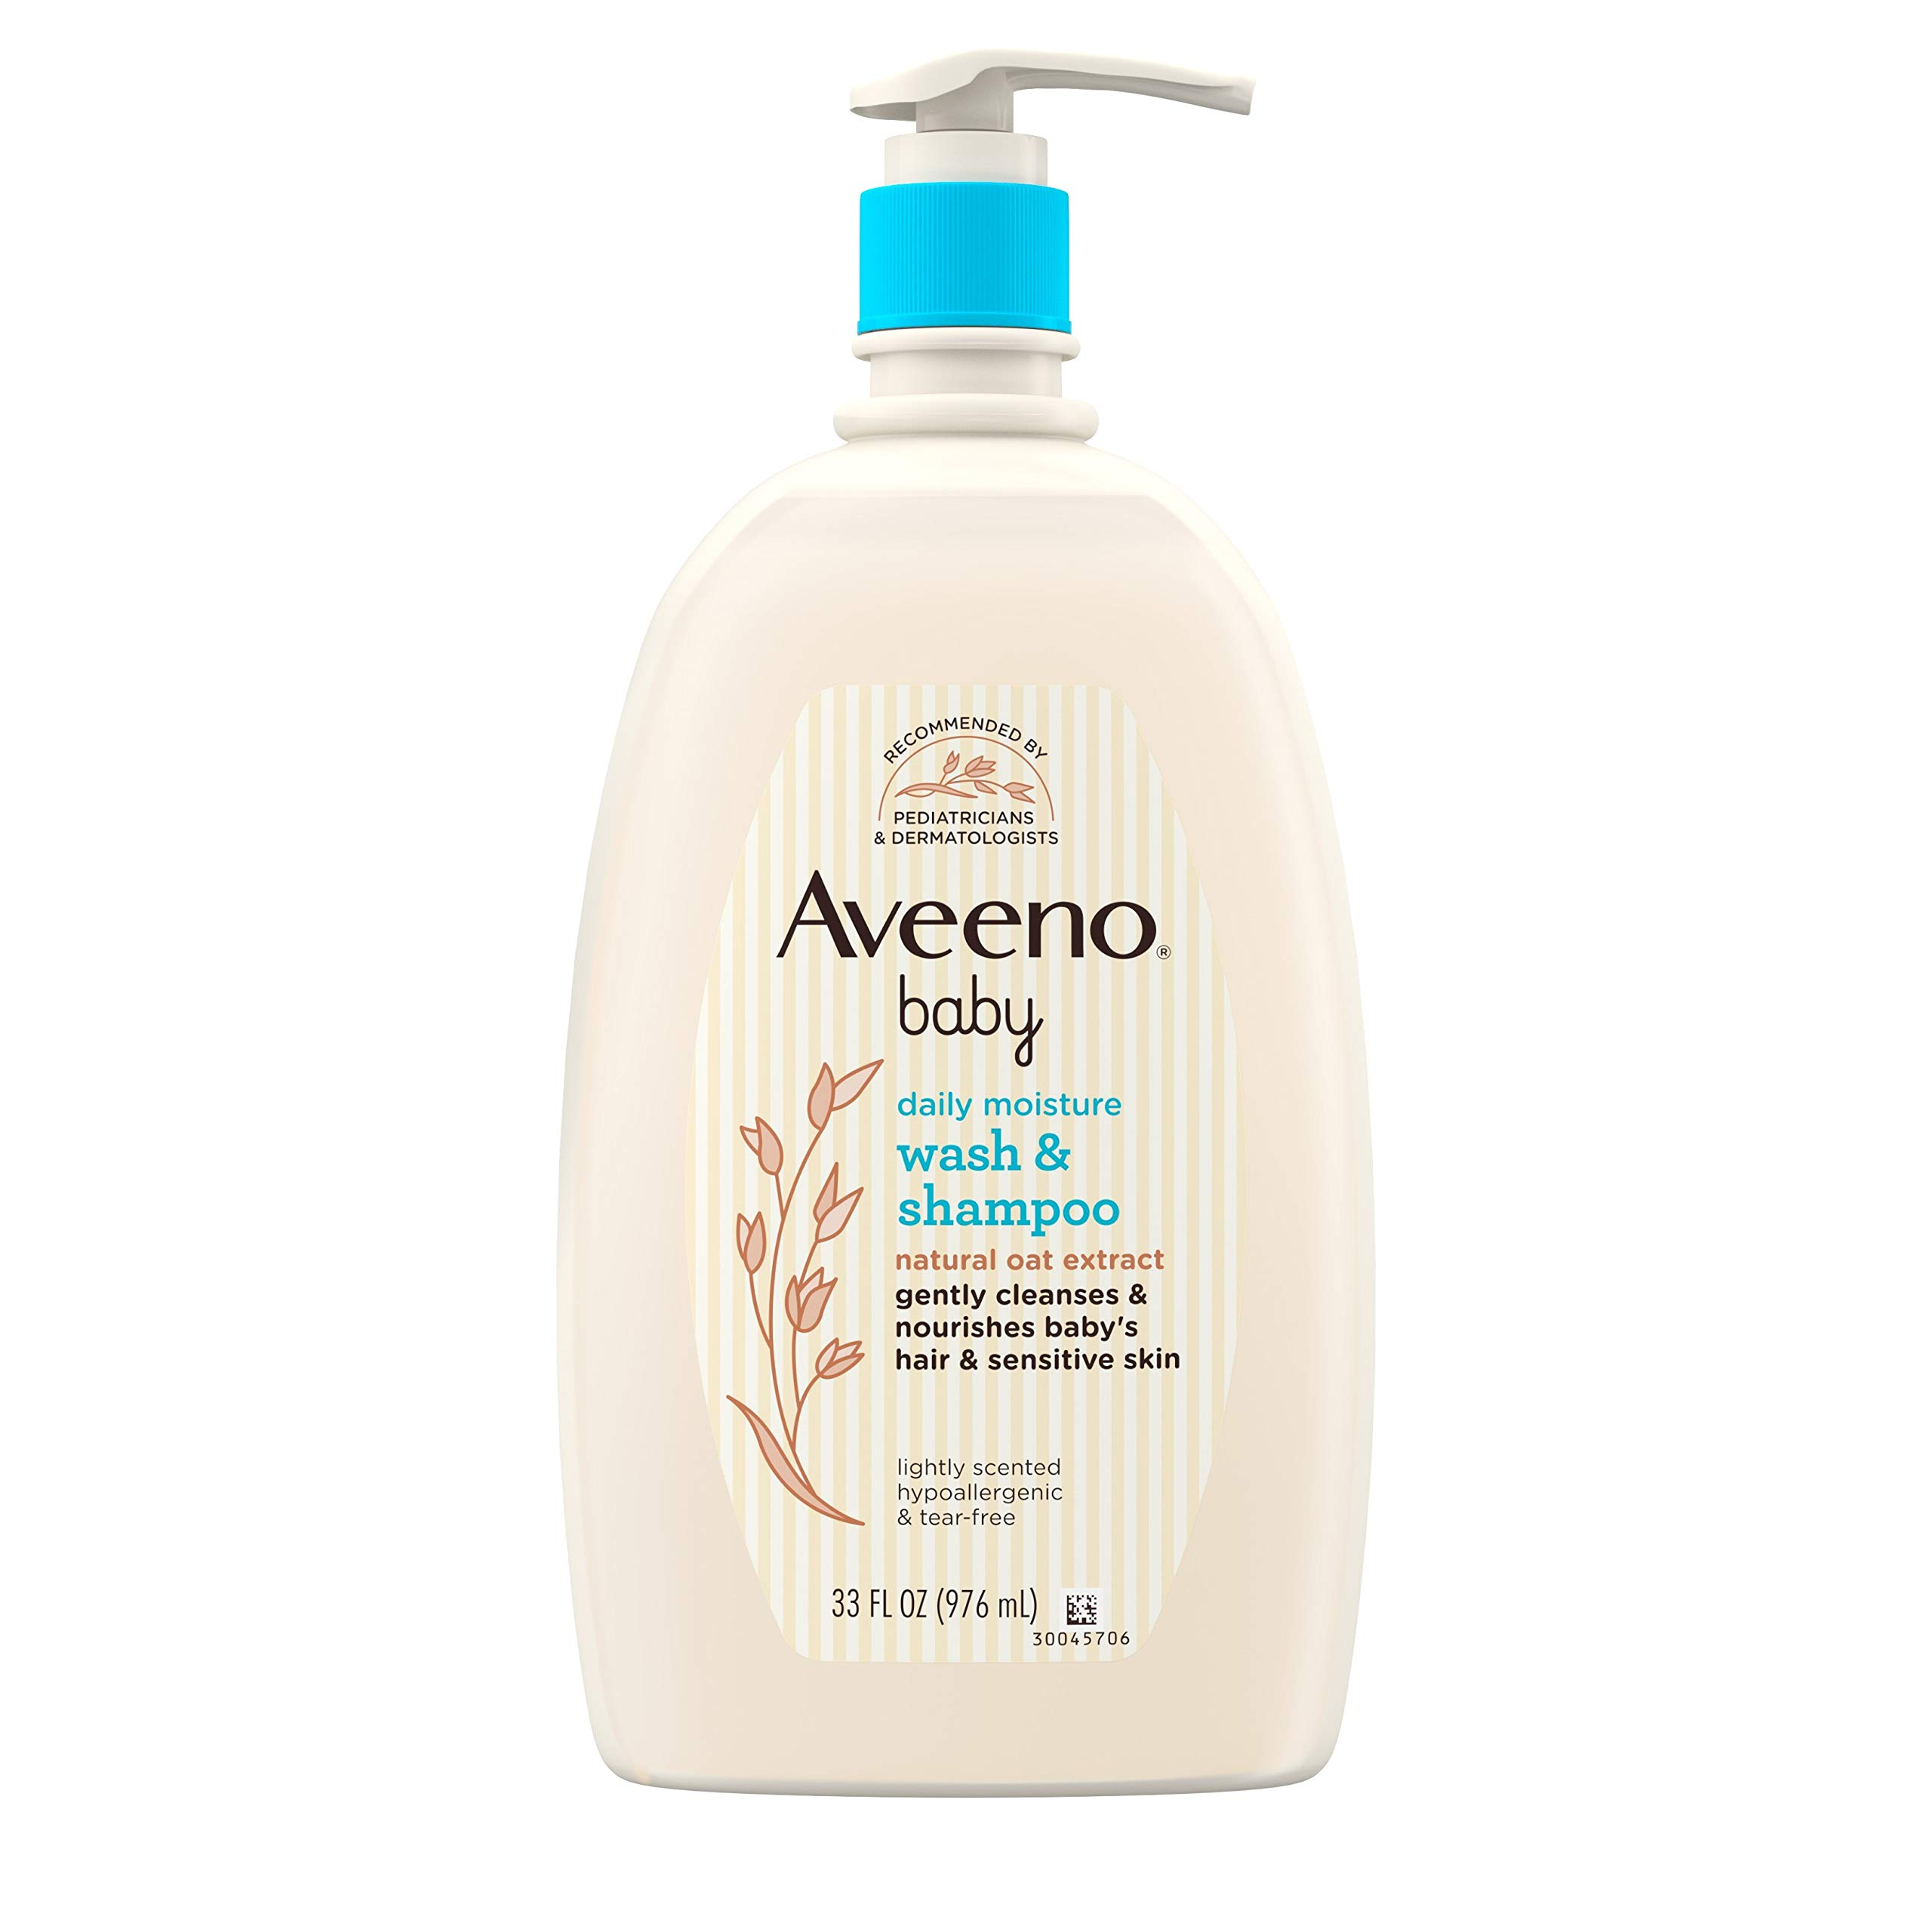 Aveeno Baby Daily Moisture Gentle Bath Wash & Shampoo with Natural Oat Extract, Hypoallergenic, Tear-Free & Paraben-Free Formula for Sensitive Hair & Skin, Lightly Scented, 33 fl. oz